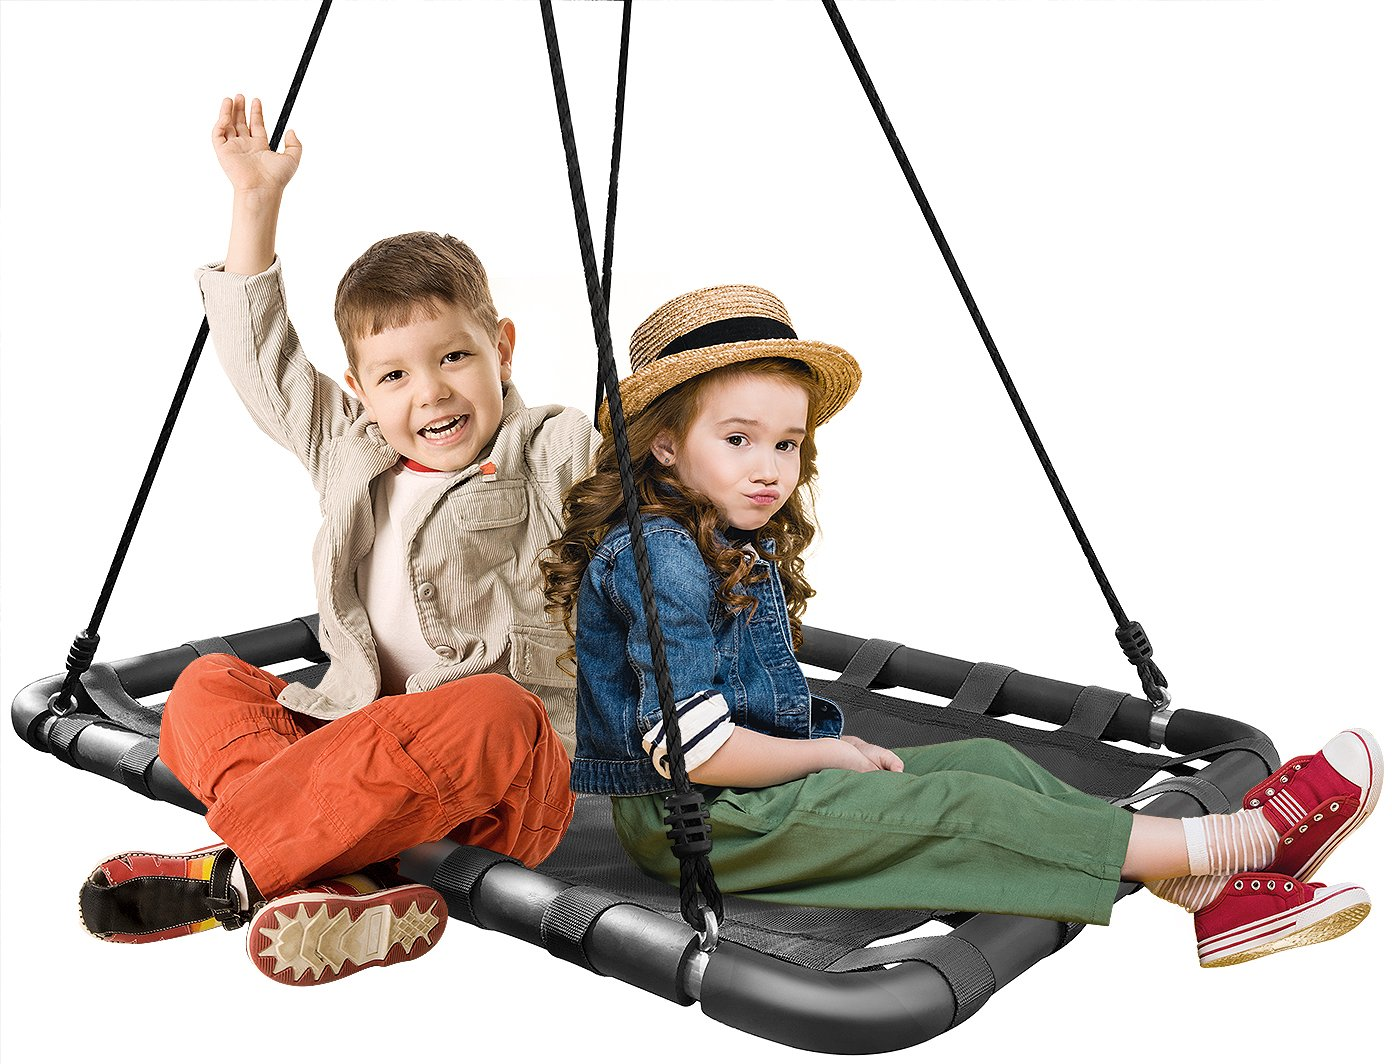 Sorbus Spinner Platform Swing - Kids Indoor/Outdoor Rectangular Mat Swing - Great for Tree, Swing Set, Backyard, Playground, Playroom - Accessories Included (40 x 30, Square Black)